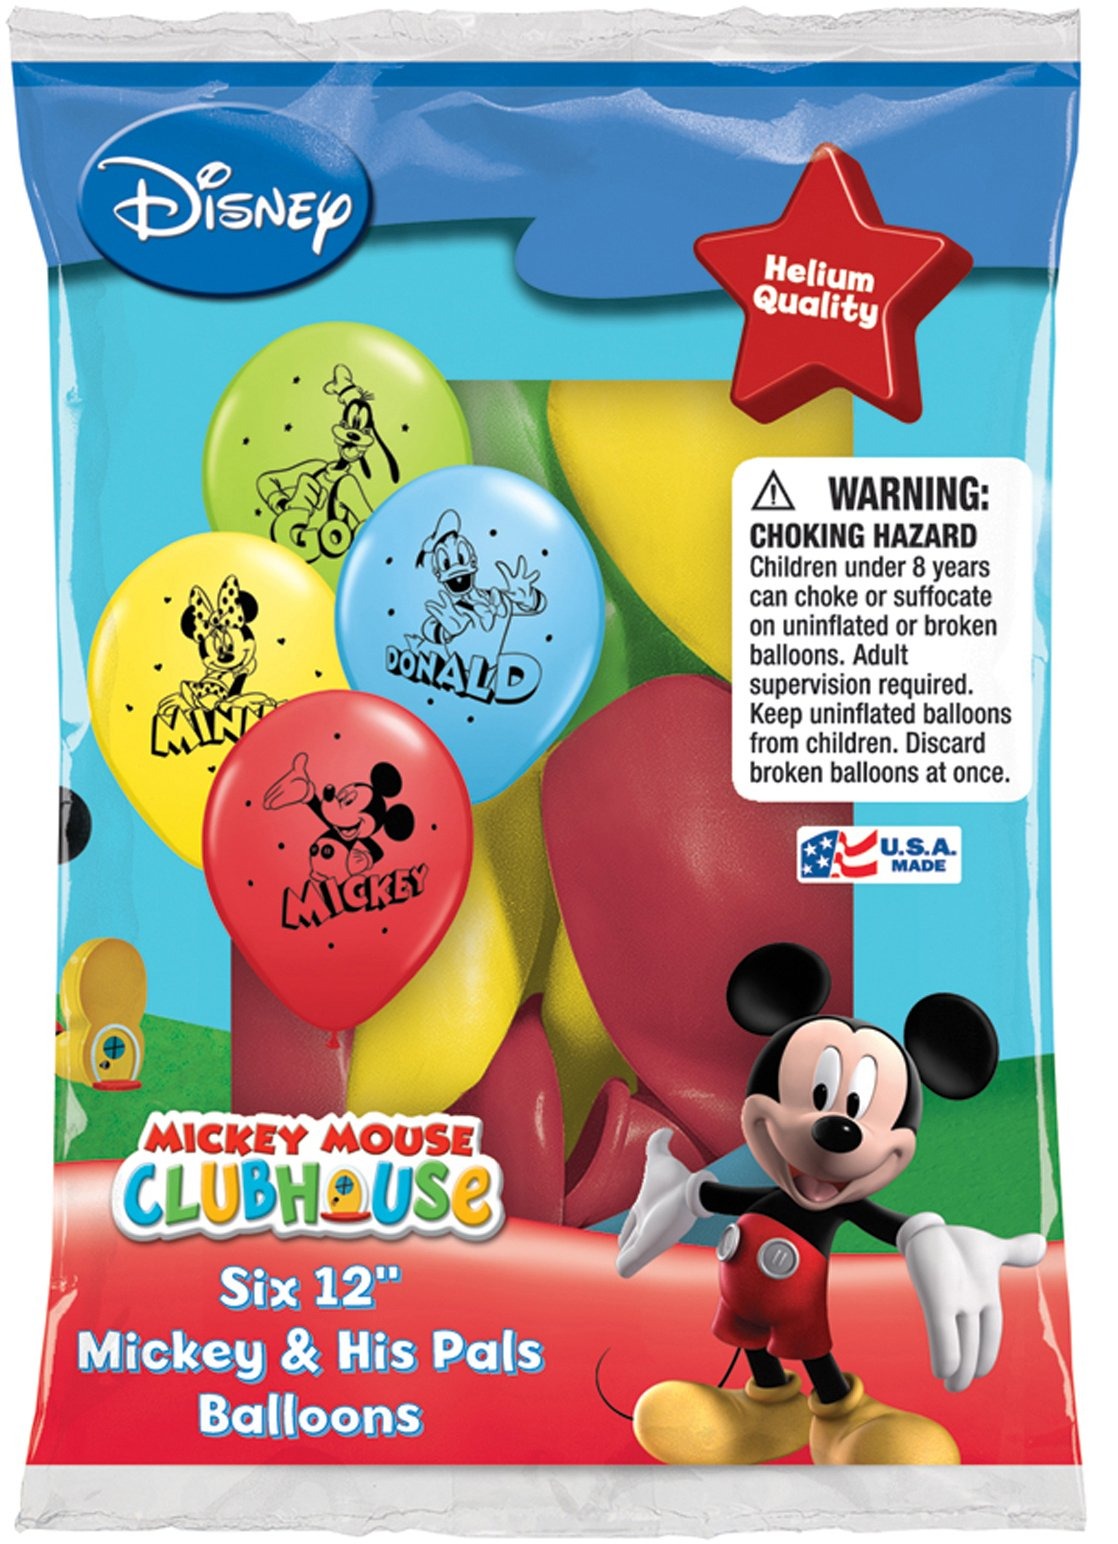 Disney Mickey and His Pals Balloons 12'' - Total 36 (6 packs of 6 each)